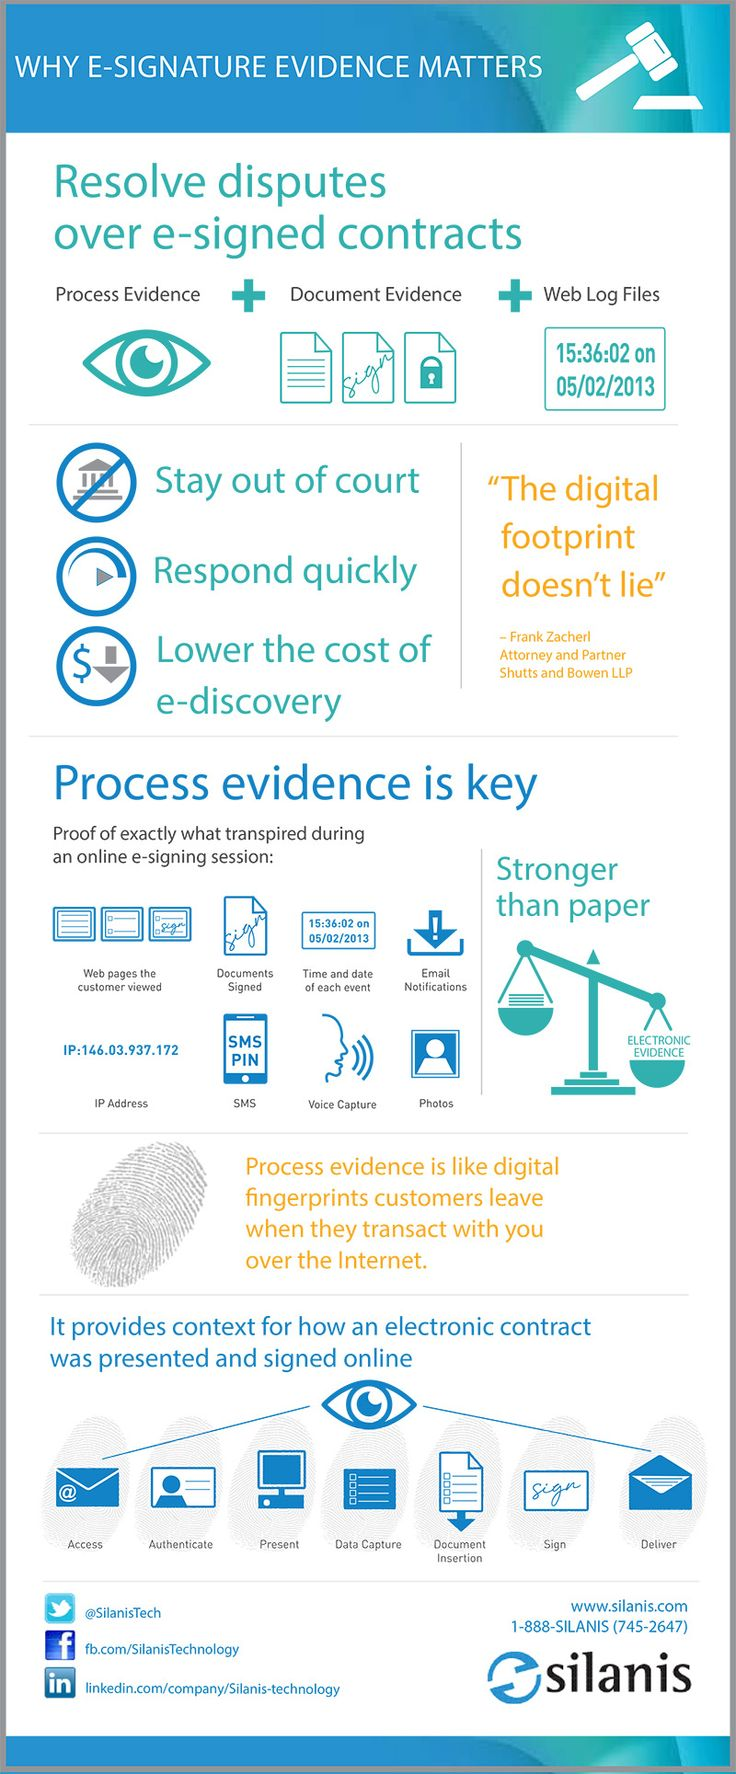 To settle confusion around the legality of e-signatures, Silanis has created an infographic around how and why e-signature evidence matters, citing resources found in a recent white paper based on 20+ years of experience in the e-signature industry as well as facts from actual cases citing e-signatures. Read more at http://www.silanis.com/blog/archives/why-e-signature-evidence-matters-infographic/?utm_campaign=E-Signature_Evidence_medium=Social_source=Pinterest